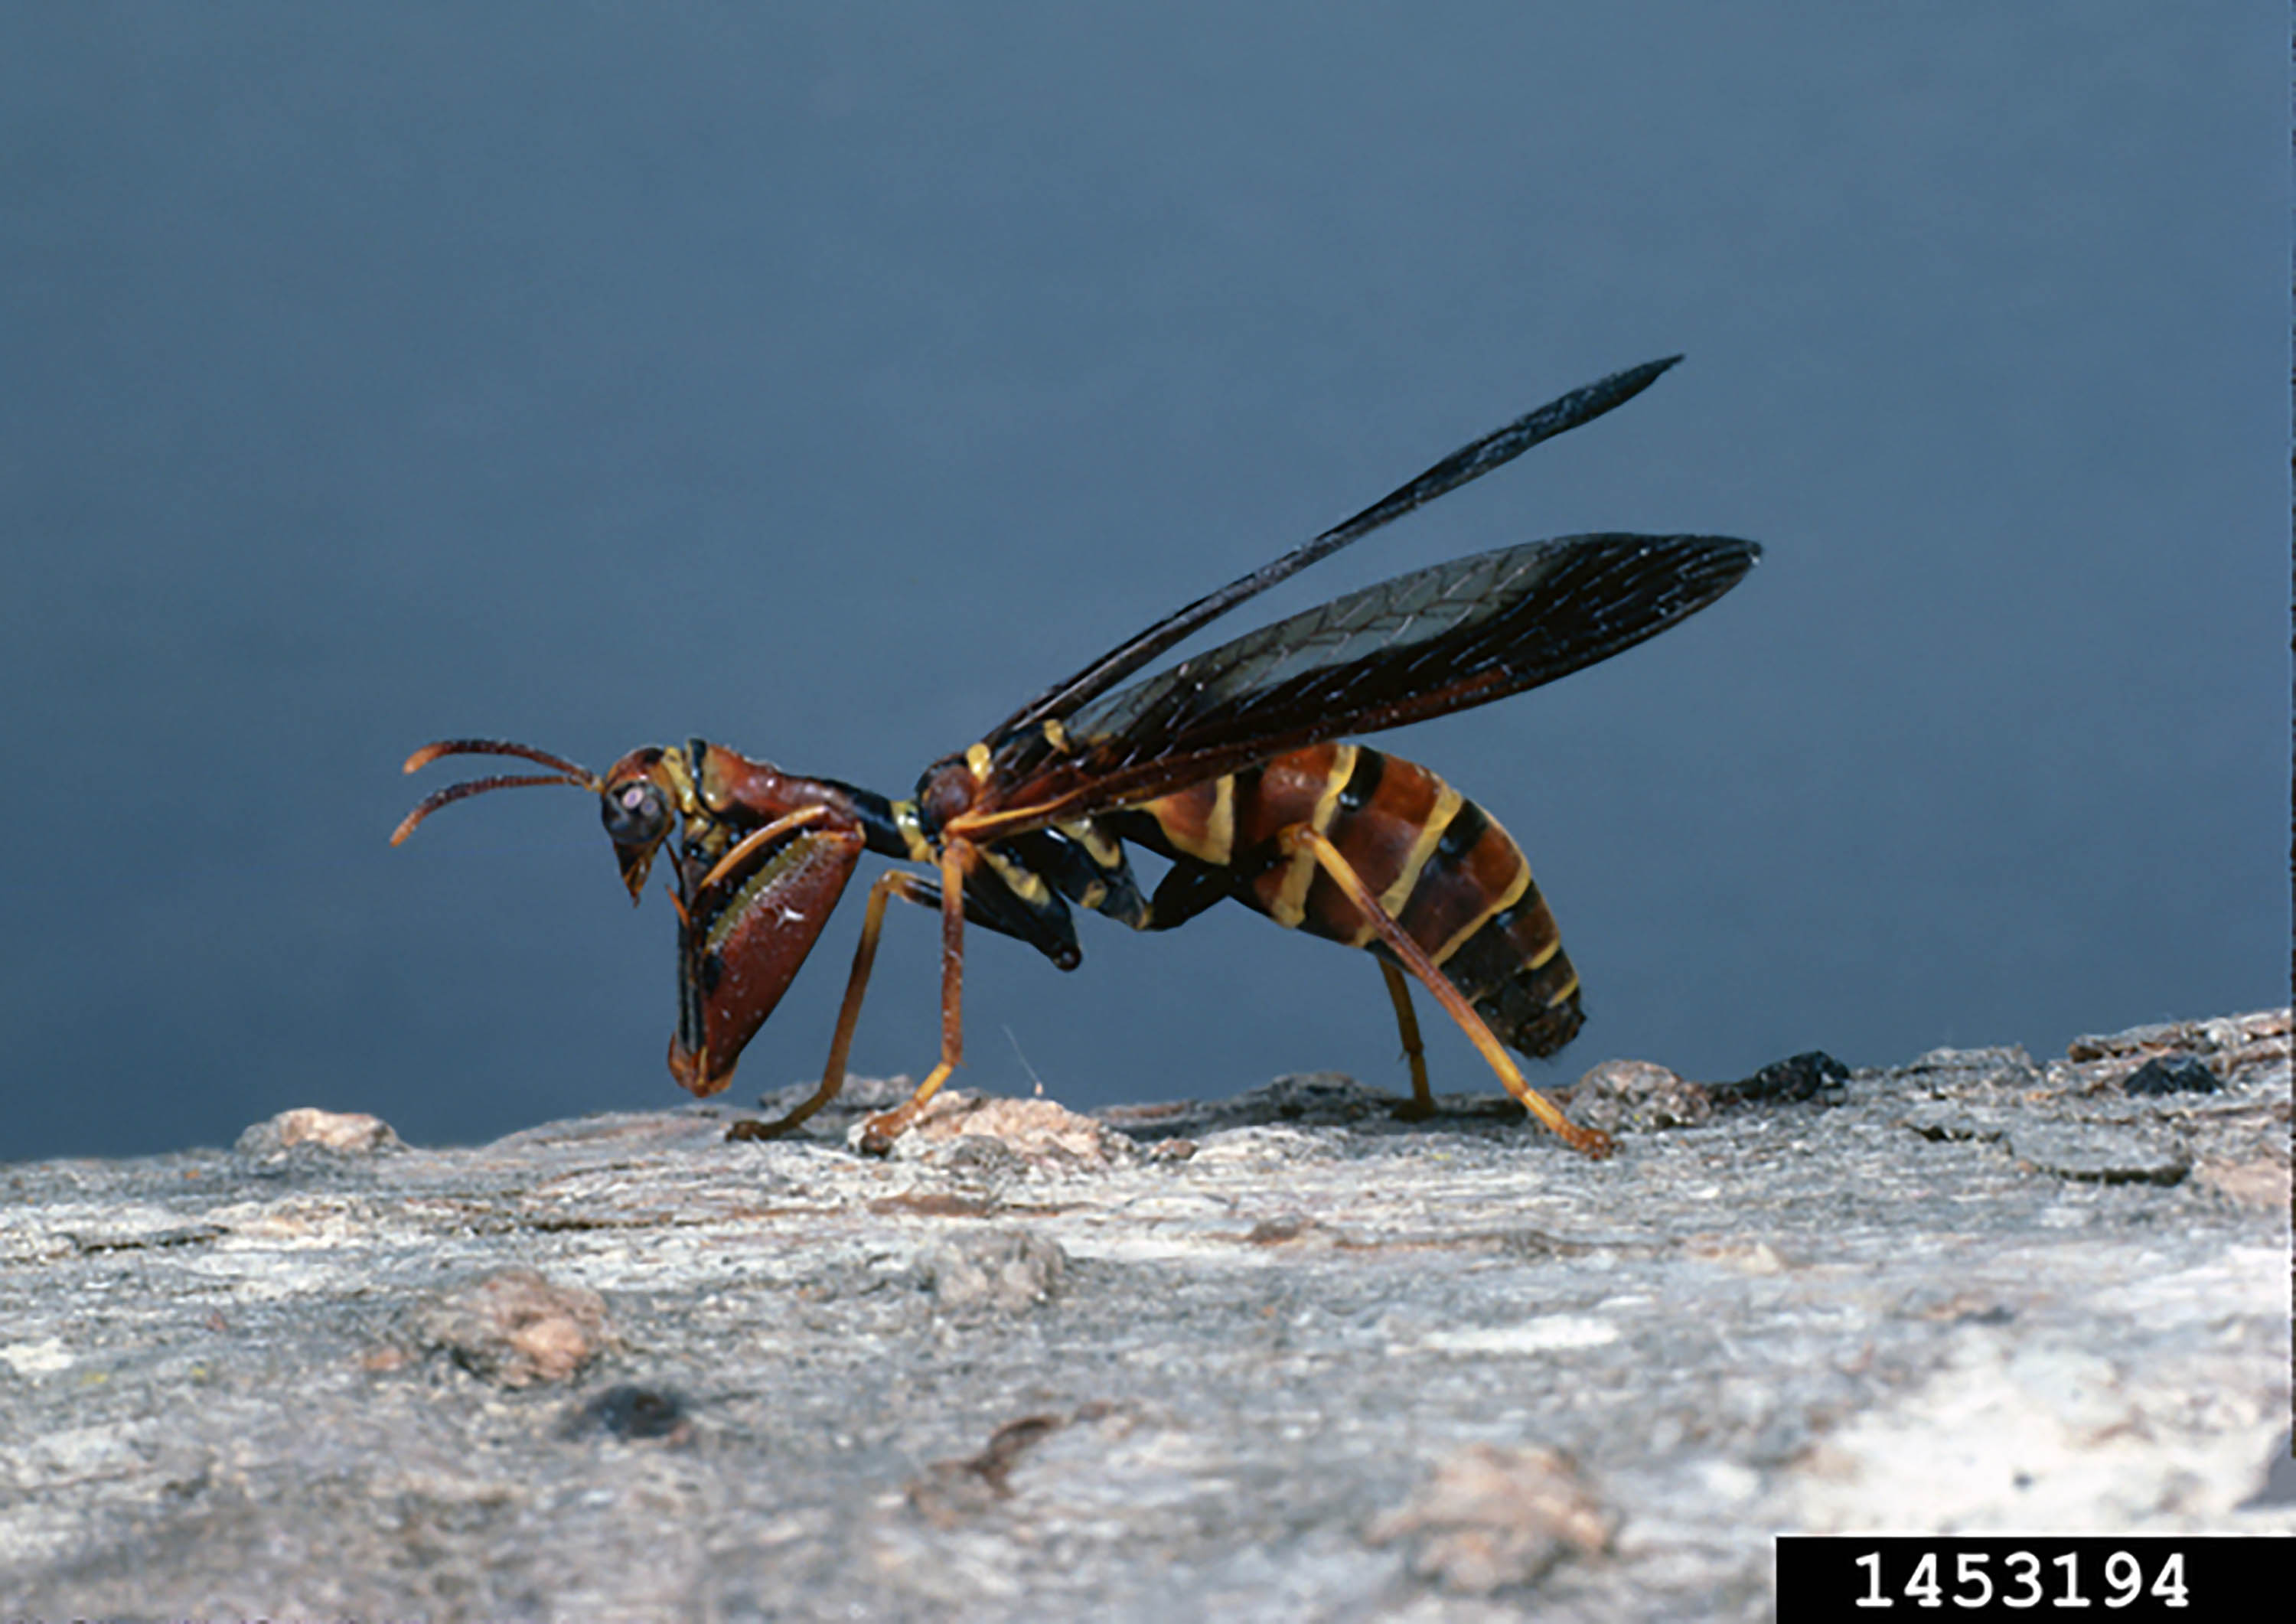 Side view of a wasp on a stick.